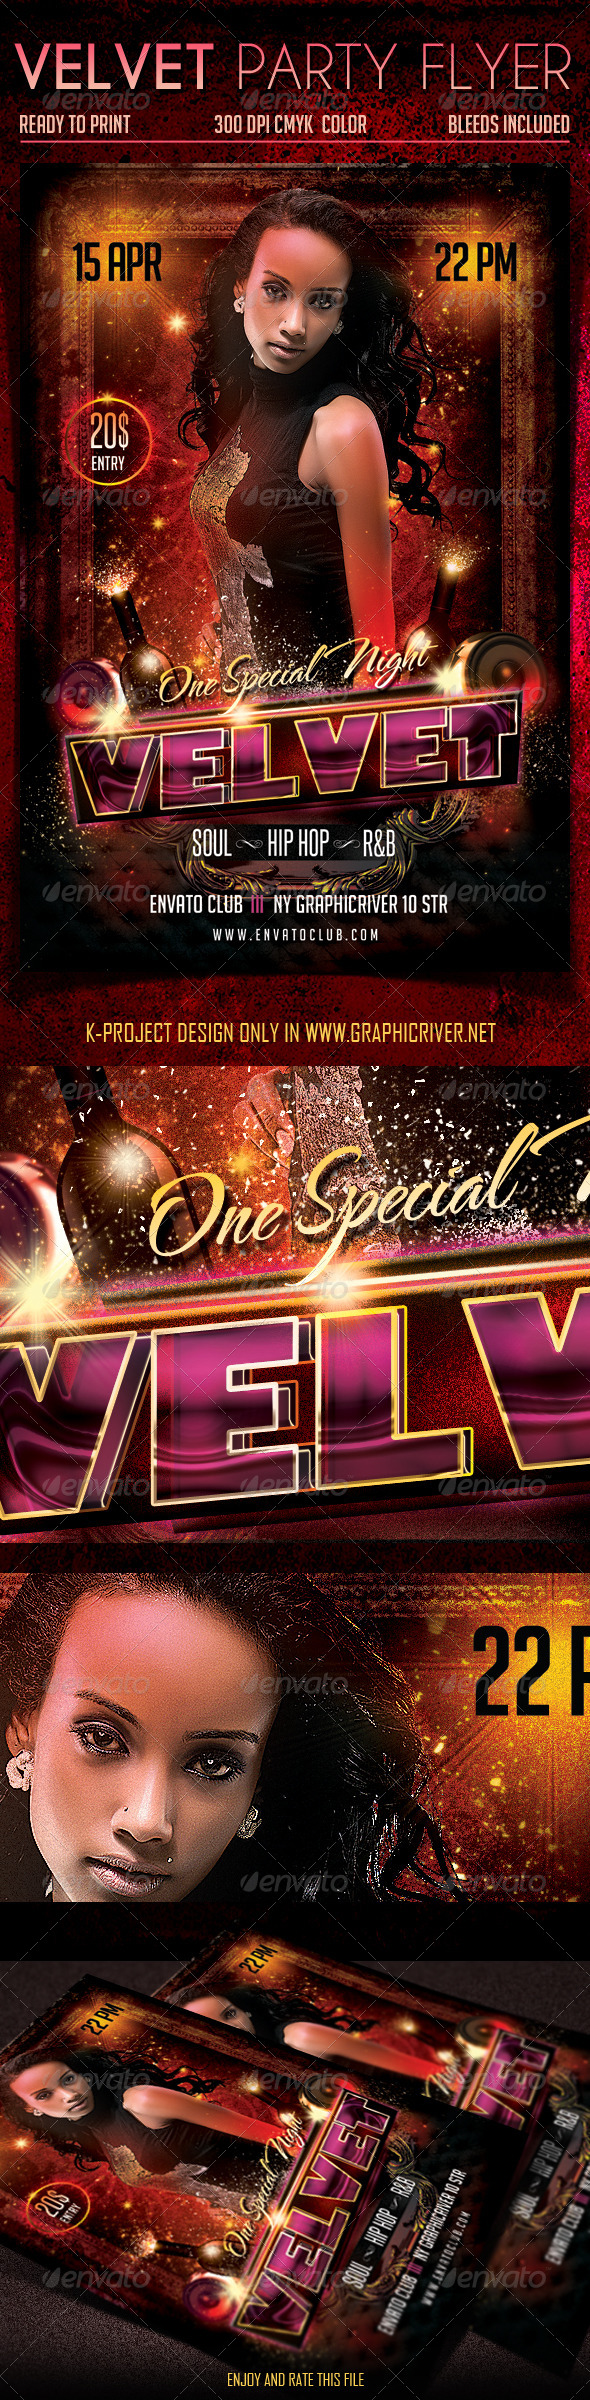 Velvet Party Flyer - Clubs & Parties Events